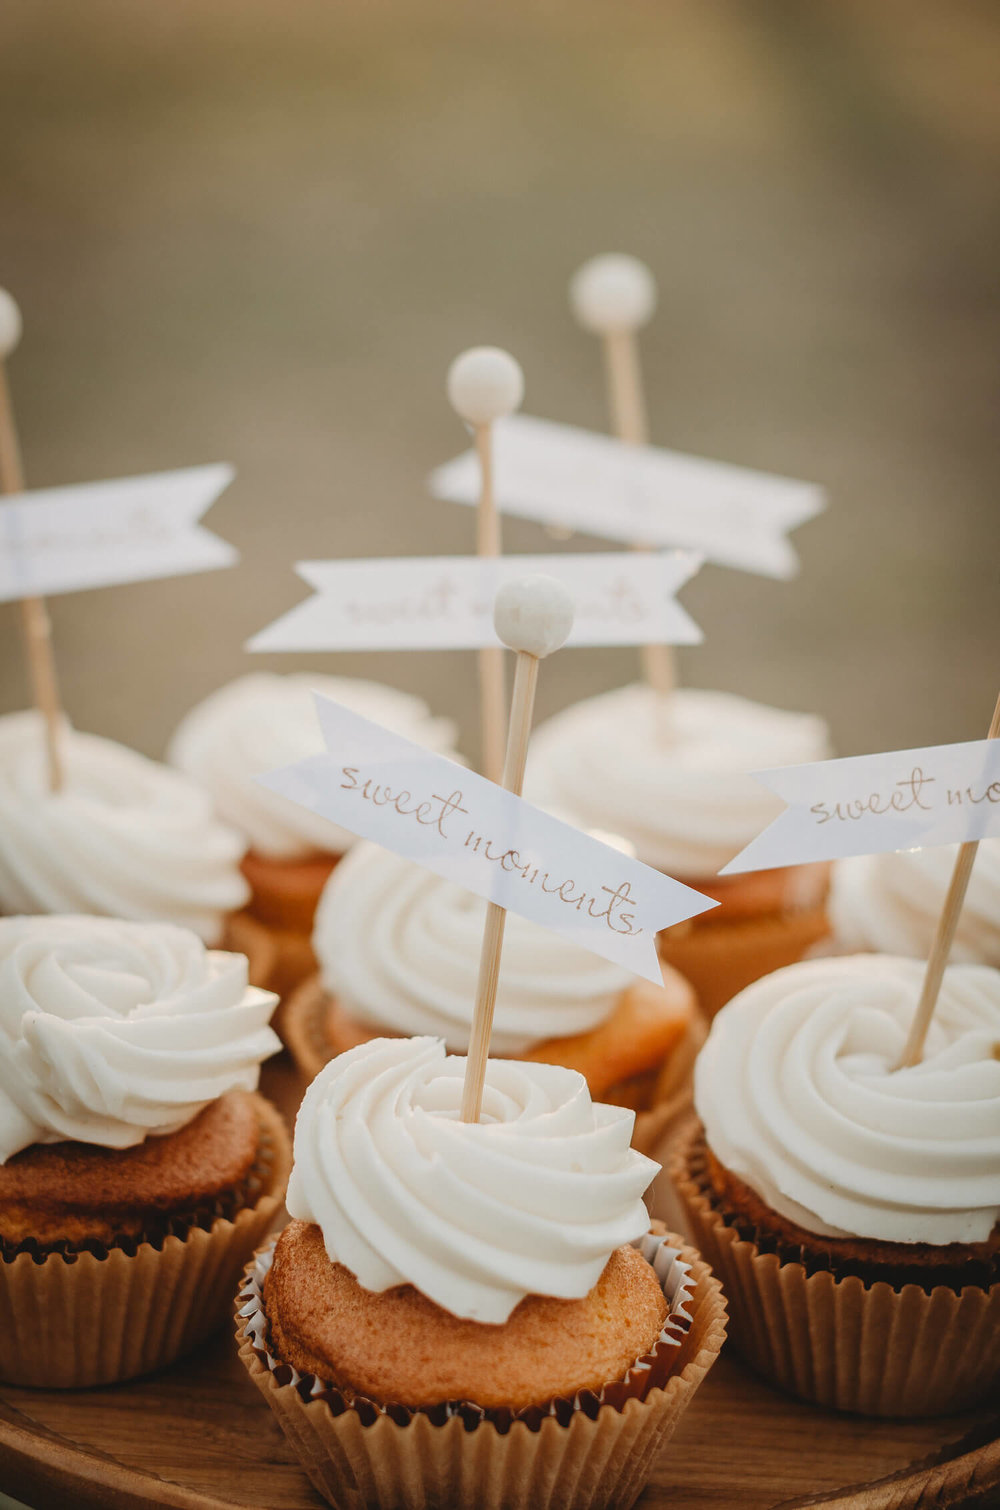 "Salted Caramel Cupcakes topped with a topper that reads ""sweet moments"" for a Rustic Fall bridal shower. Click to see many more bridal shower ideas from this Fall in Love party theme. Created by party stylist Mint Event Design. #bridalshowers #bridalshowerideas #rusticwedding #rusticbridalshower #bridalshowerdecor #farmwedding #partyideas #fallbridalshower #bridalshowercupcake #bridaslshowerdessert"